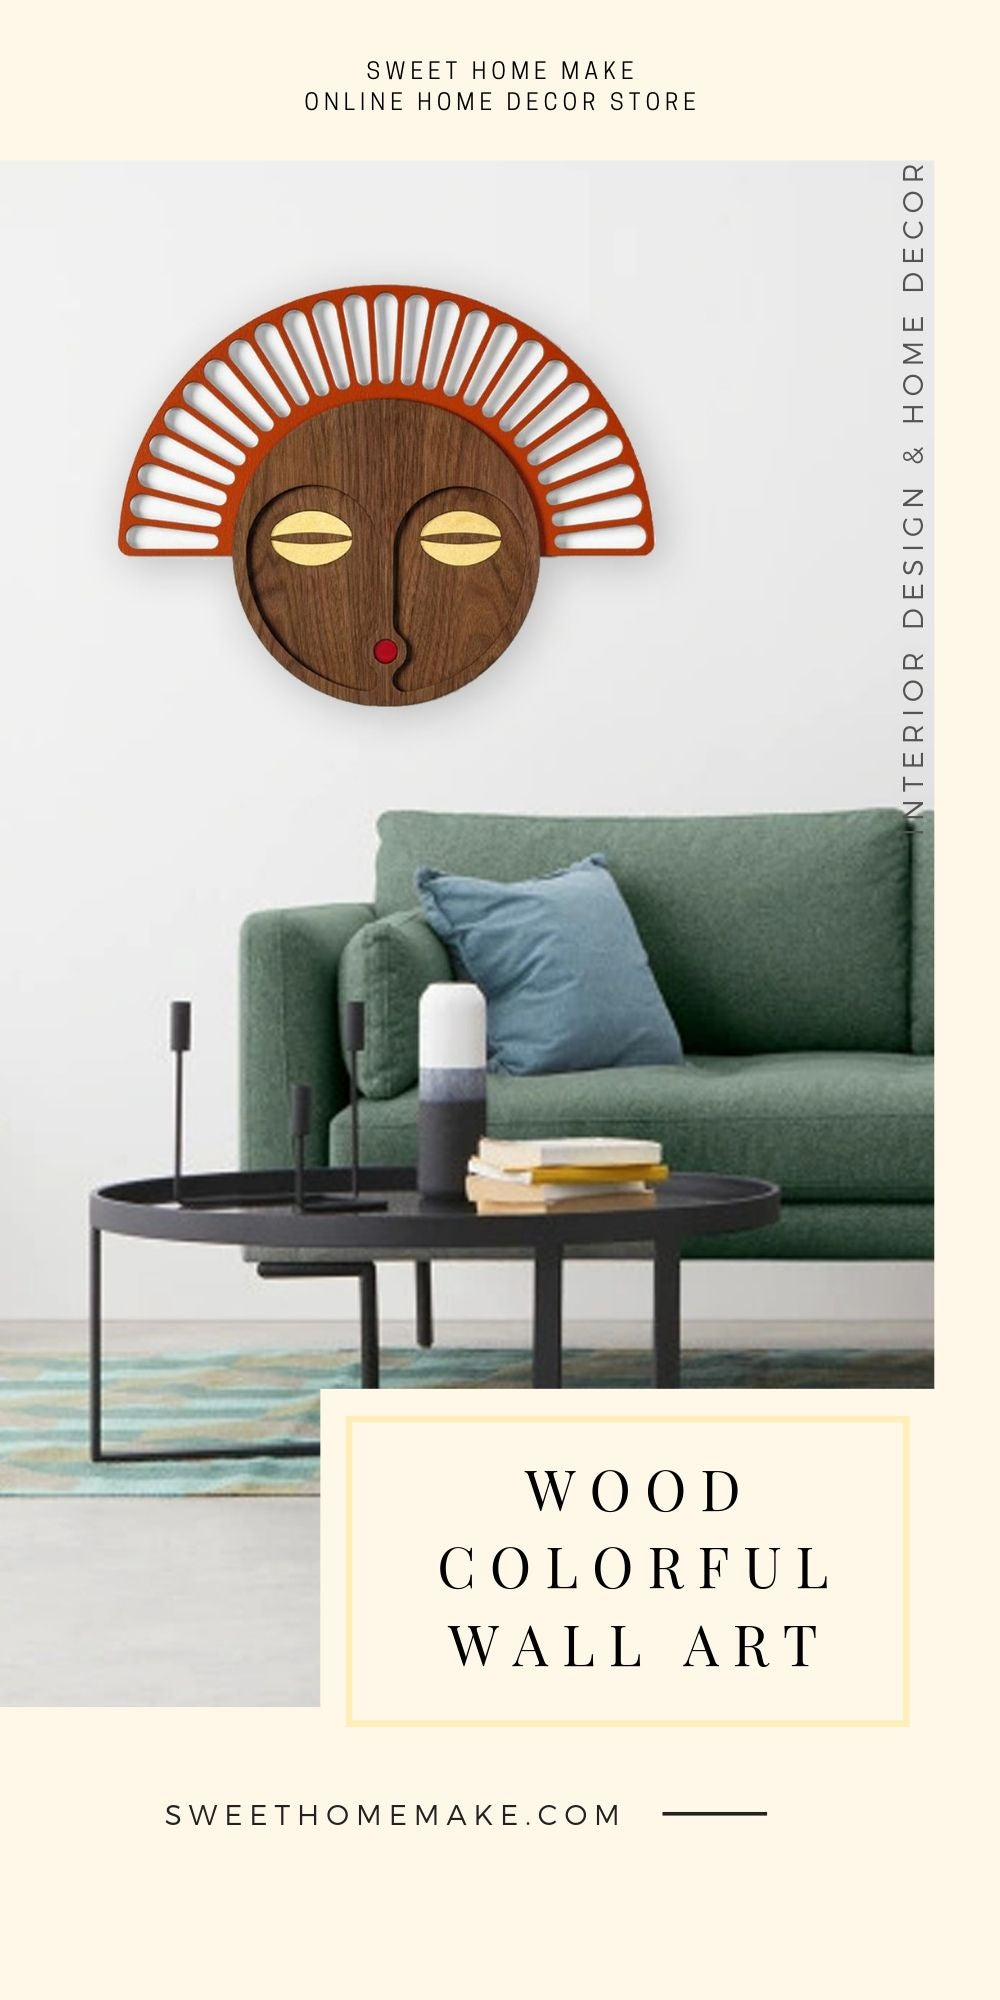 African Wall Mask with Wooden Wall Art